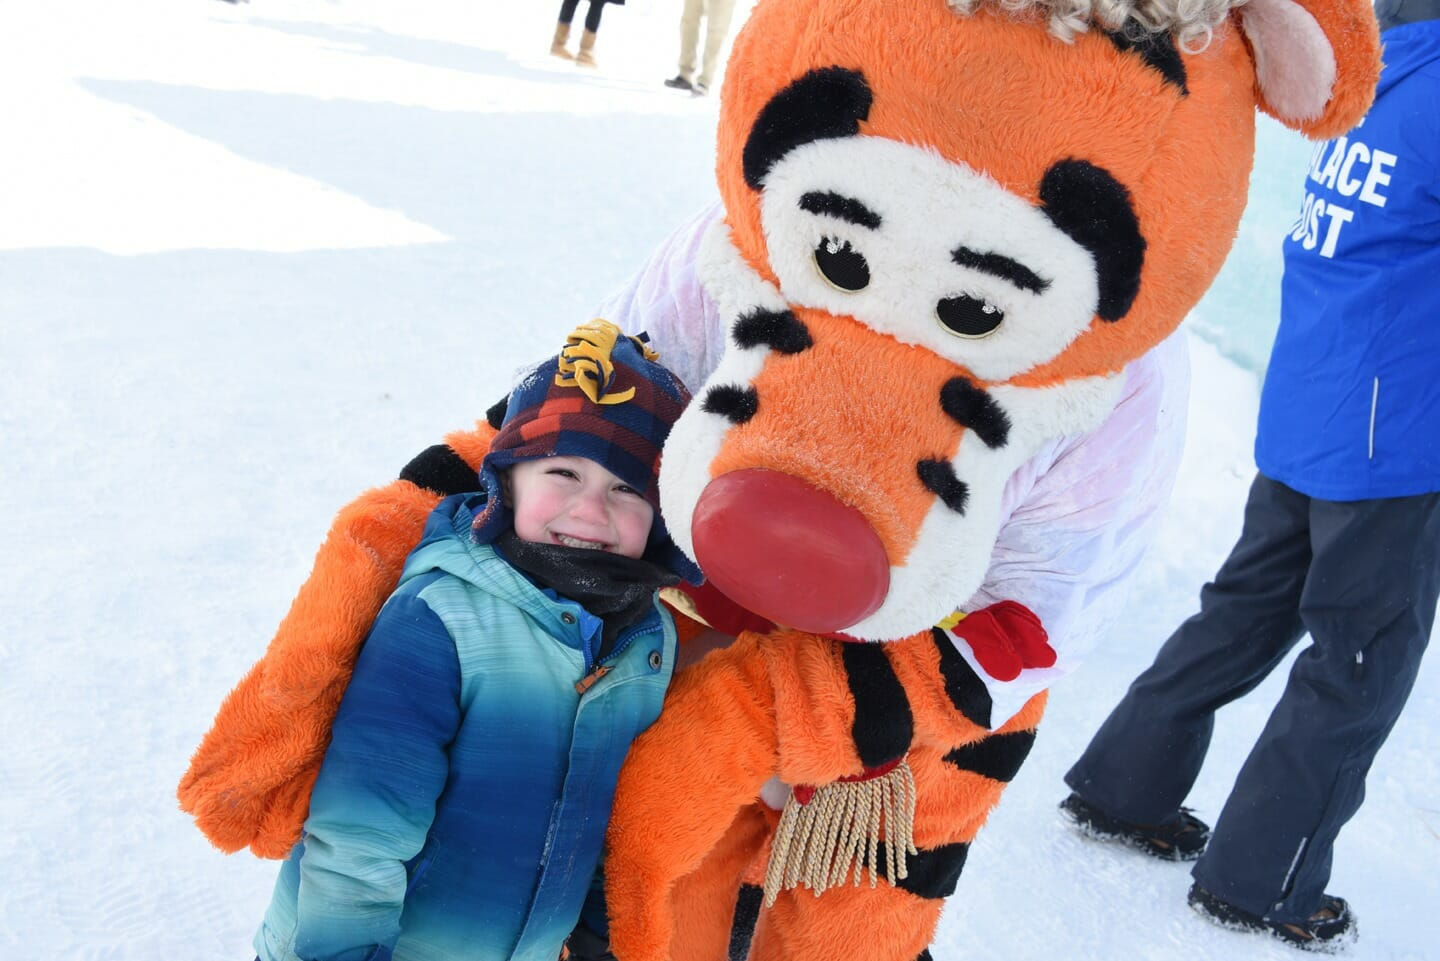 Child posing with a costumed character.